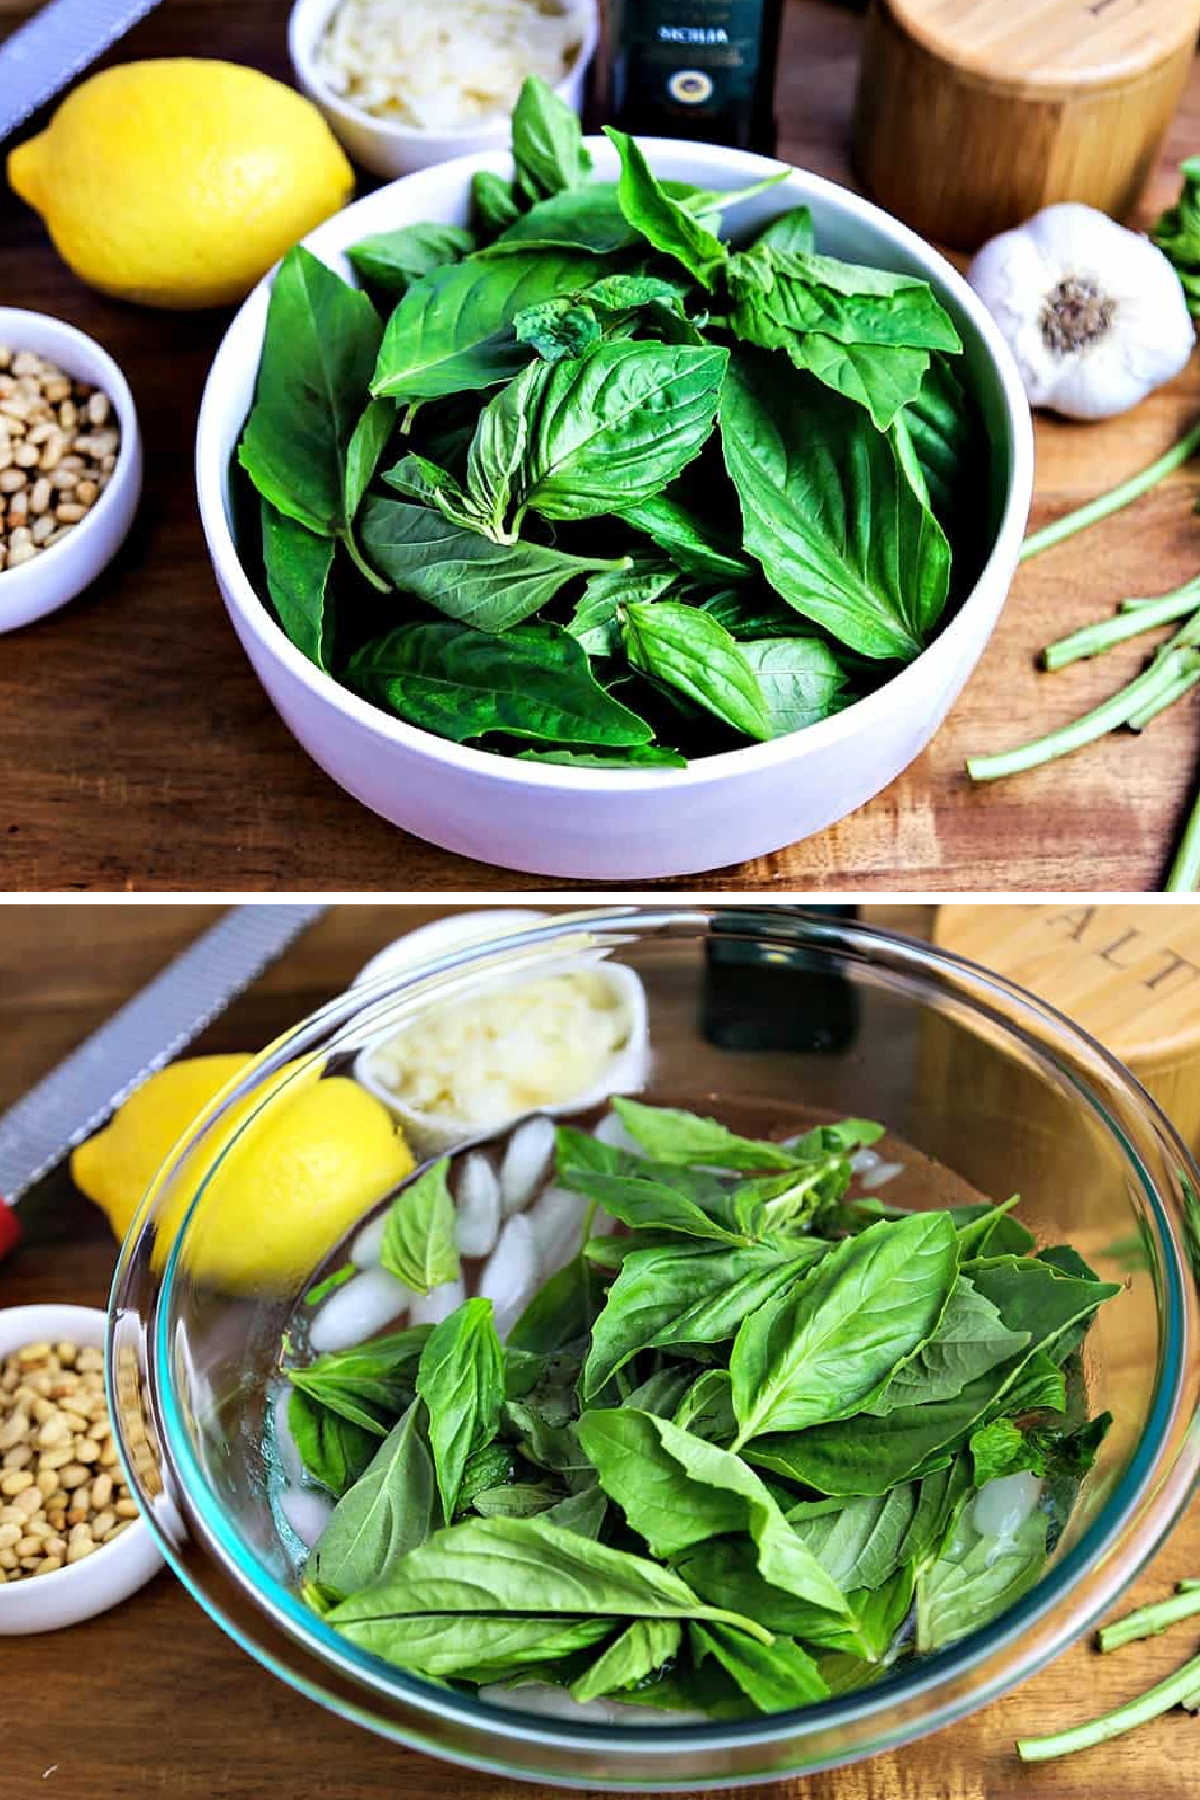 process steps for shocking basil leaves in a bowl of ice water.